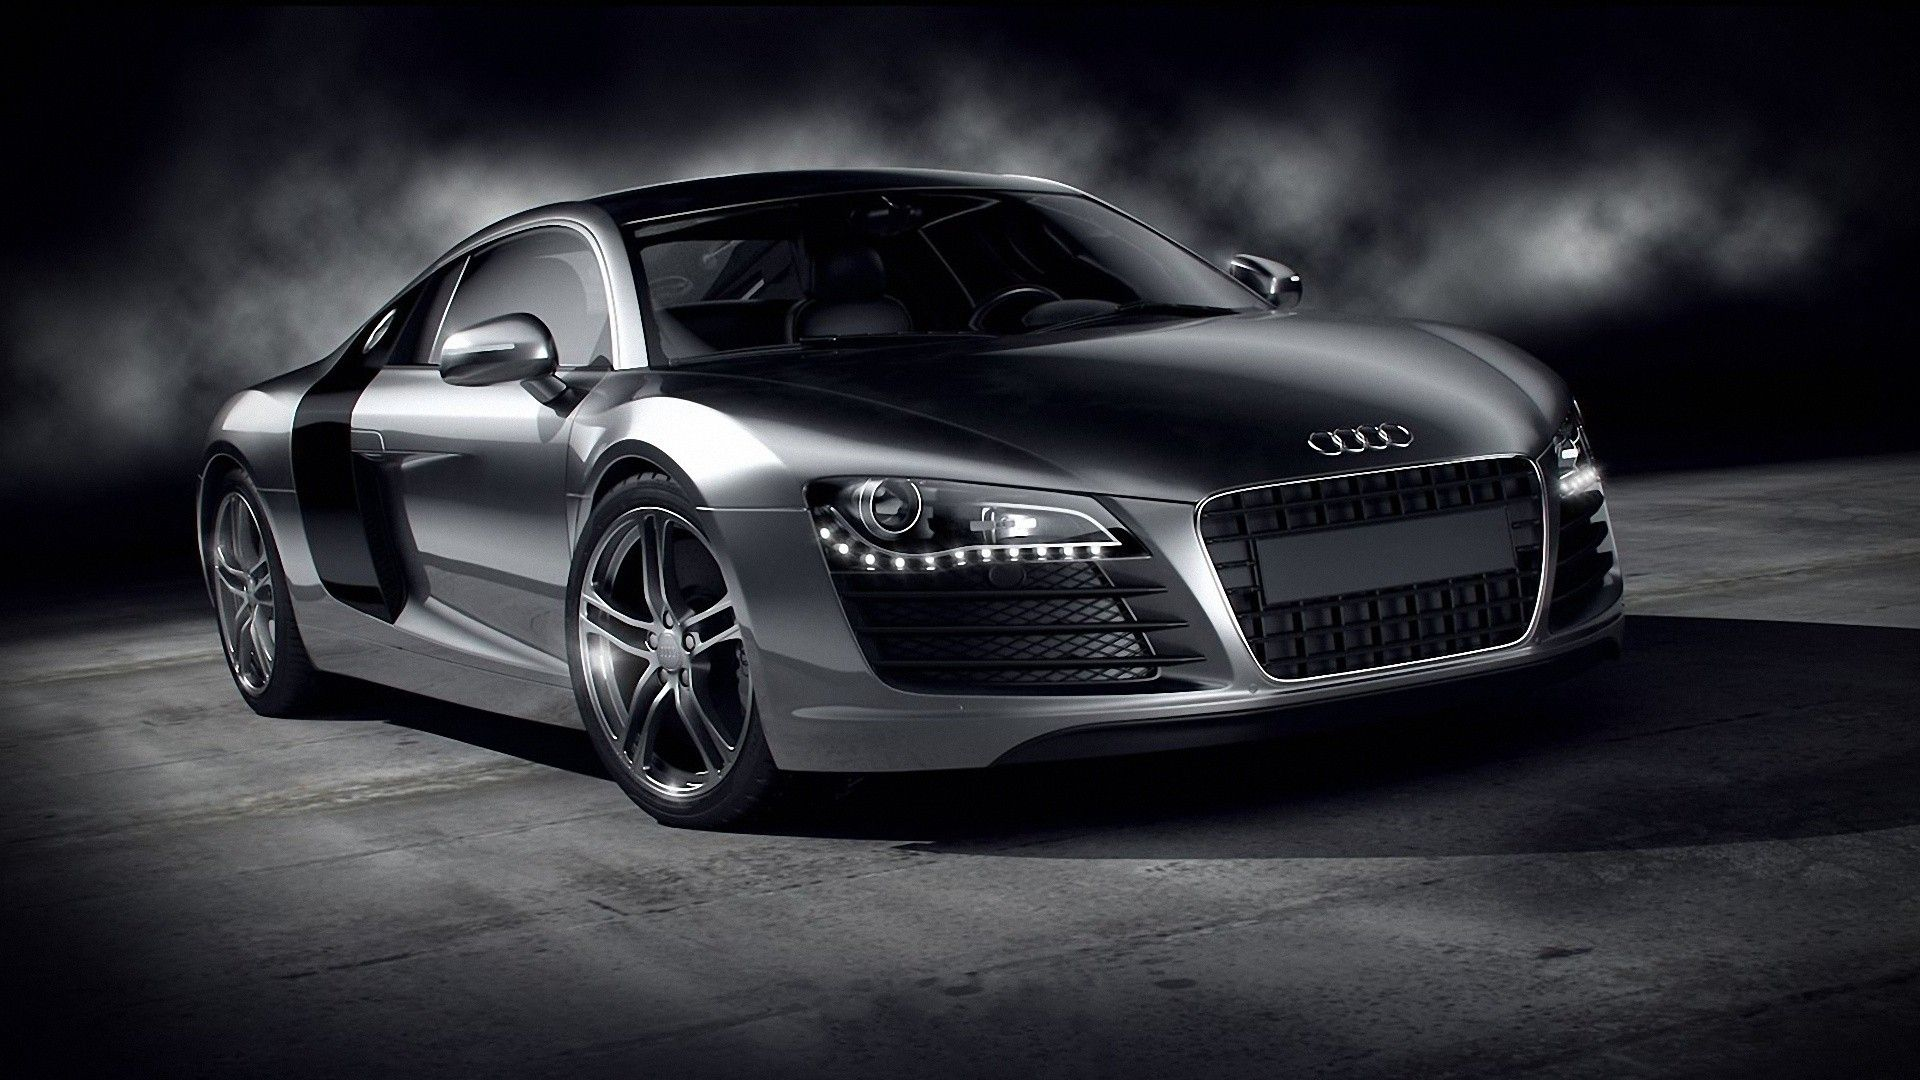 Sports Car Audi R8 Is A Fantastic Hd Wallpaper For Your Pc Or Mac And Is Available In High Definition Resolutions Audi Sports Car Audi R8 Wallpaper Audi Cars